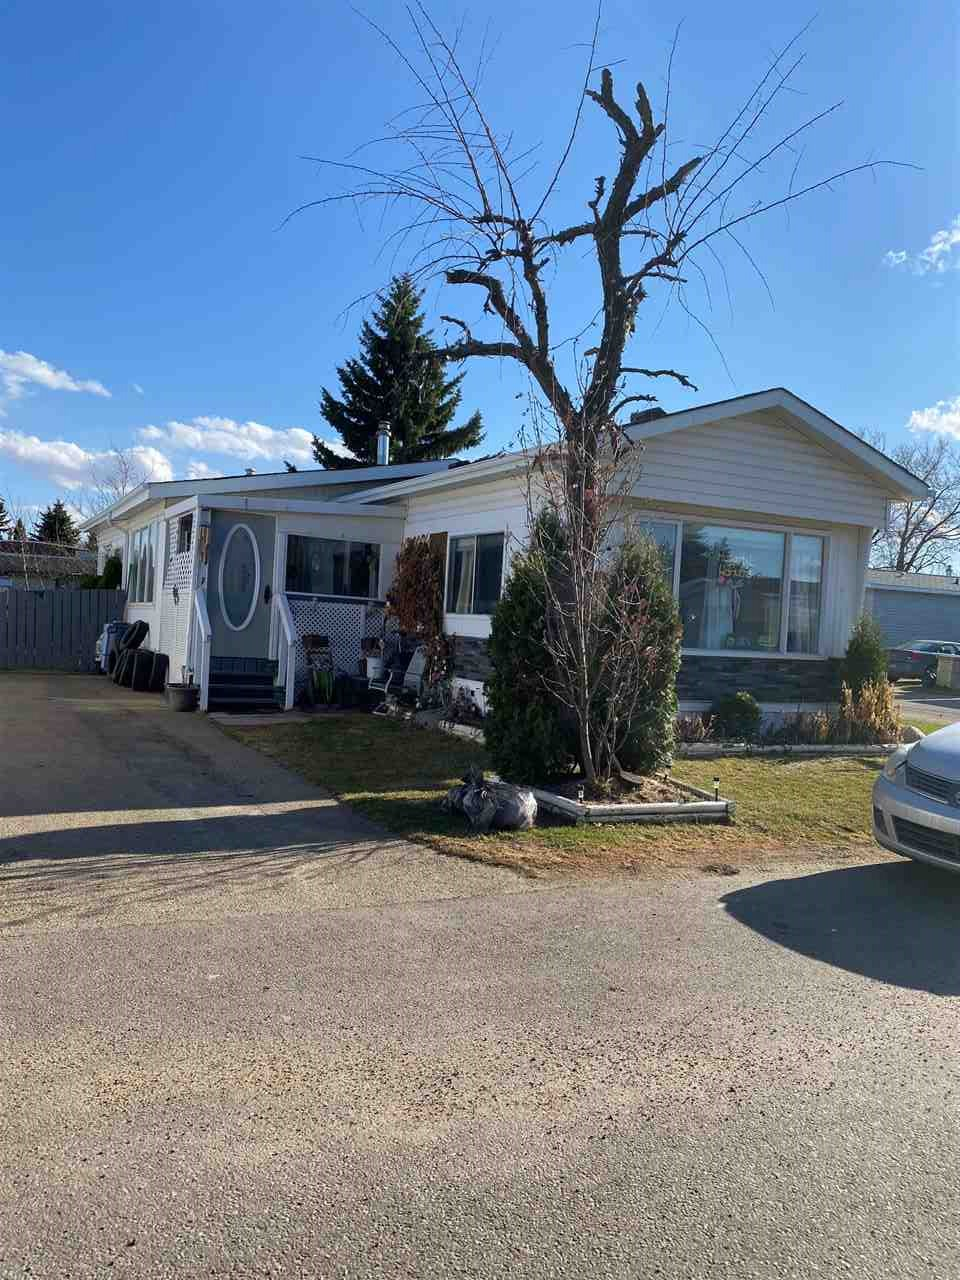 This mobile home is nicely updated and is an affordable living option. It features a fully fenced yard for a young child or pet plus an extra long driveway (48 ft.). Entering the enclosed entrance, you get a welcoming feeling. Step inside and imagine life in this 2 bedroom home. There is an additional formal dining room with vaulted ceilings and a second addition of a large room that is insulated and has it's own furnace. The living room is spacious and the kitchen has extra cabinetry plus a breakfast bar as your table space has been moved into the dining room. The 5 pce bathroom has double sinks and shares space with the laundry area. Both bedrooms are large, have 2 windows and the master has a walk in close.  WEST VIEW Village is well established and has a handy location close to Spruce Grove, West Edmonton, St. Albert and Industrial parks where you may work. Lot rental is $720 and your corner lot is larger than most. You should come compare this unit's features to a condo where you will have condo fees